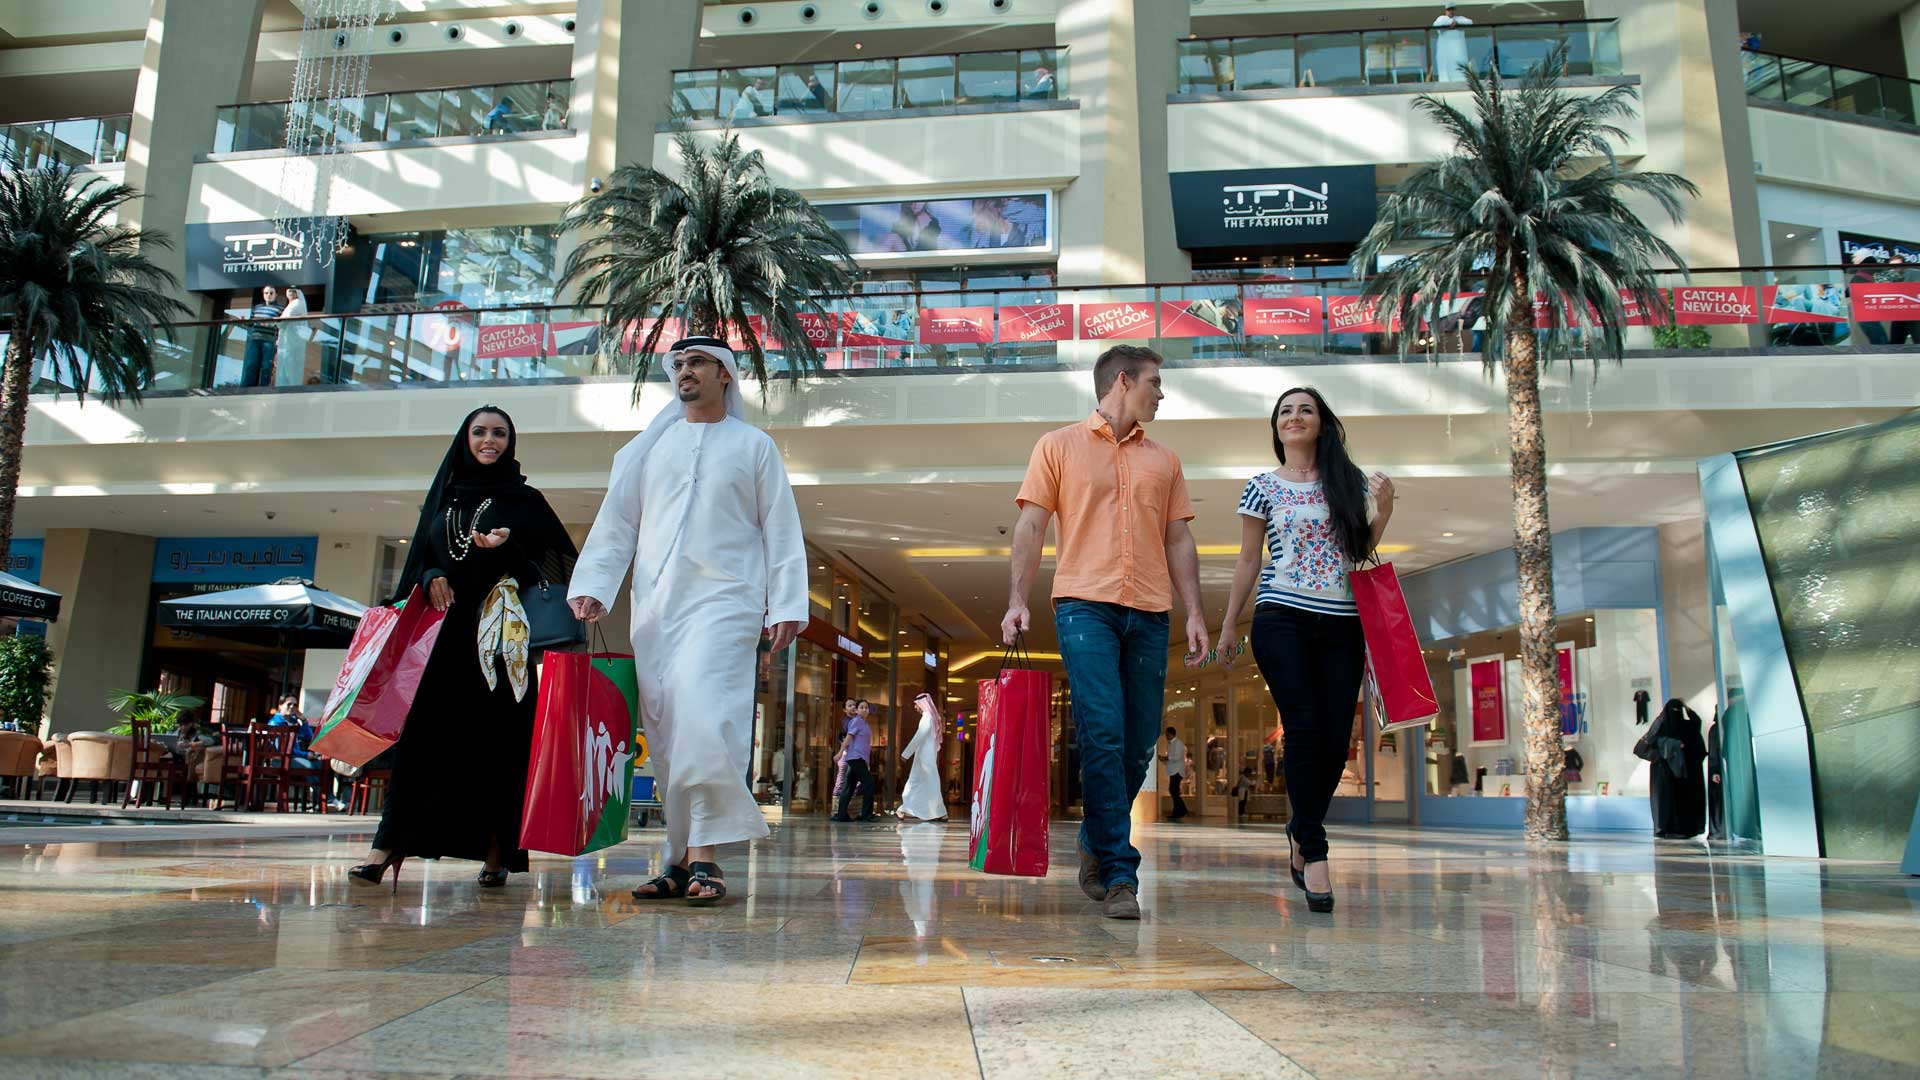 Shoppers can indulge in a shopping spree at various participating malls in Dubai.